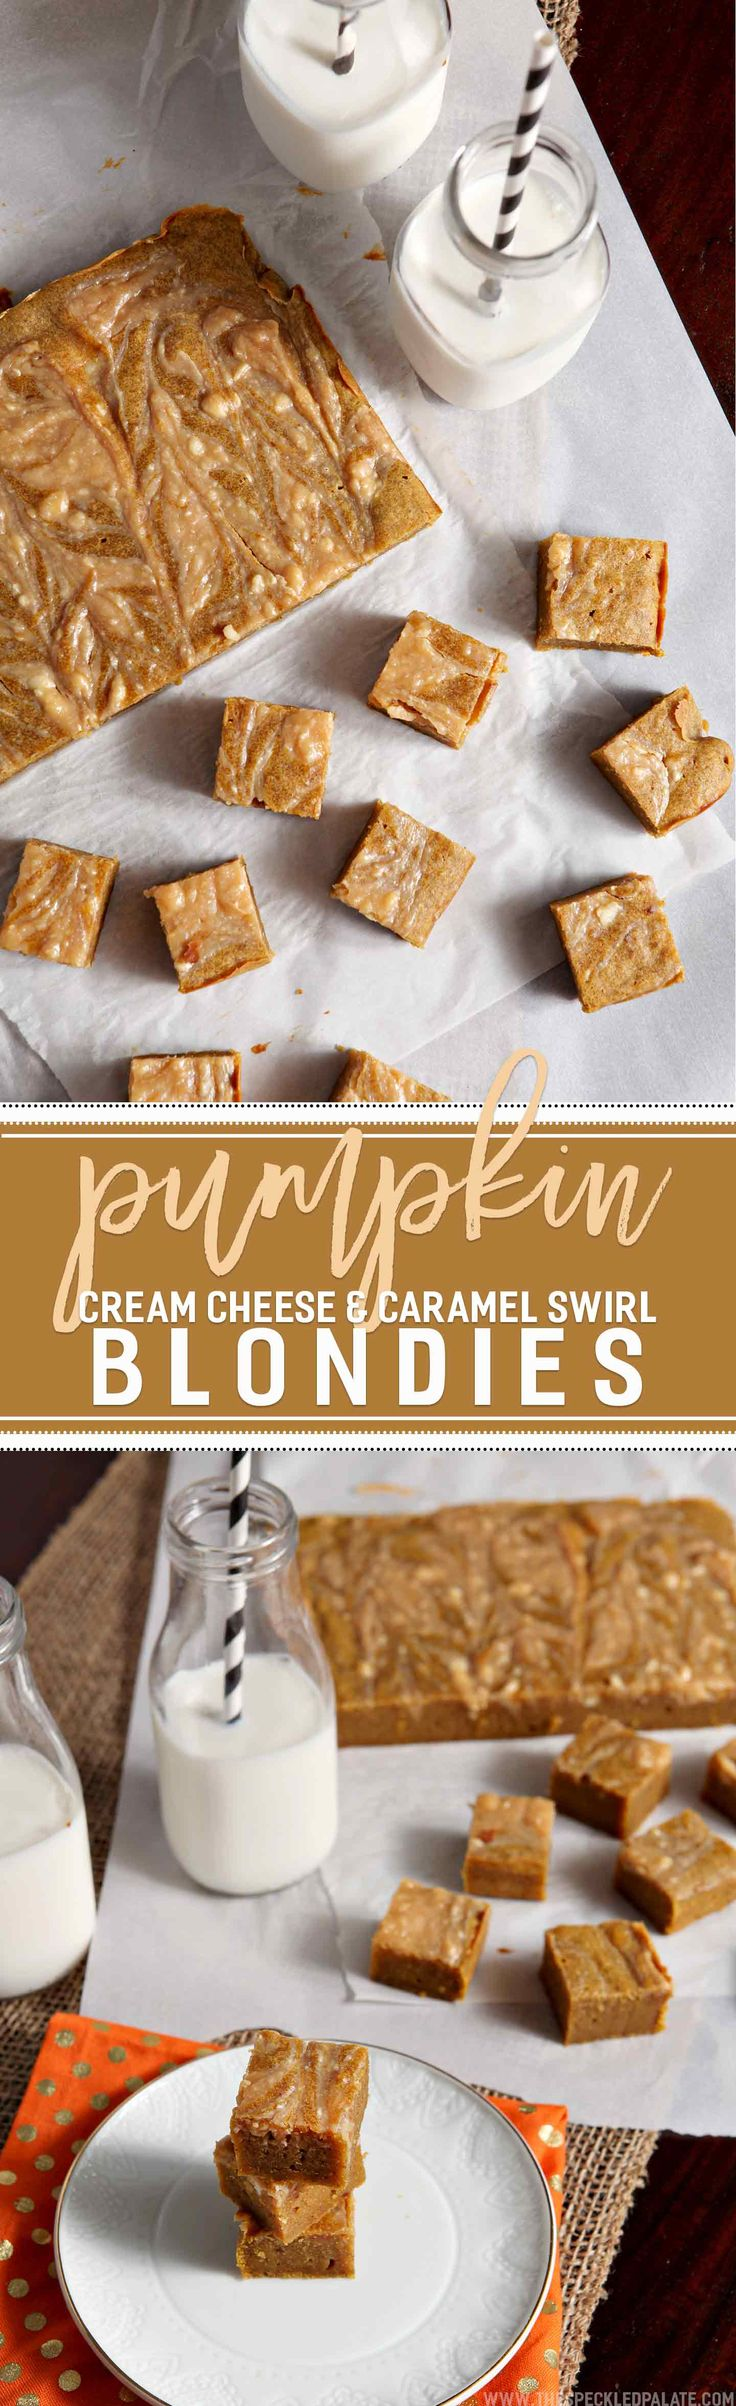 Surprise your family and friends by baking these seasonal Pumpkin Caramel Cream Cheese Swirl Blondies this year! A twist on a traditional blondie, these treats sing of pumpkin-flavored goodness. Pumpkin puree mixes into the blondie batter, along with traditional pumpkin spices, then the autumn flavors are punched up a notch with the swirling of Caramel Cream Cheese into the batter. These gooey-in-the-middle blondies make a delicious fall dessert!